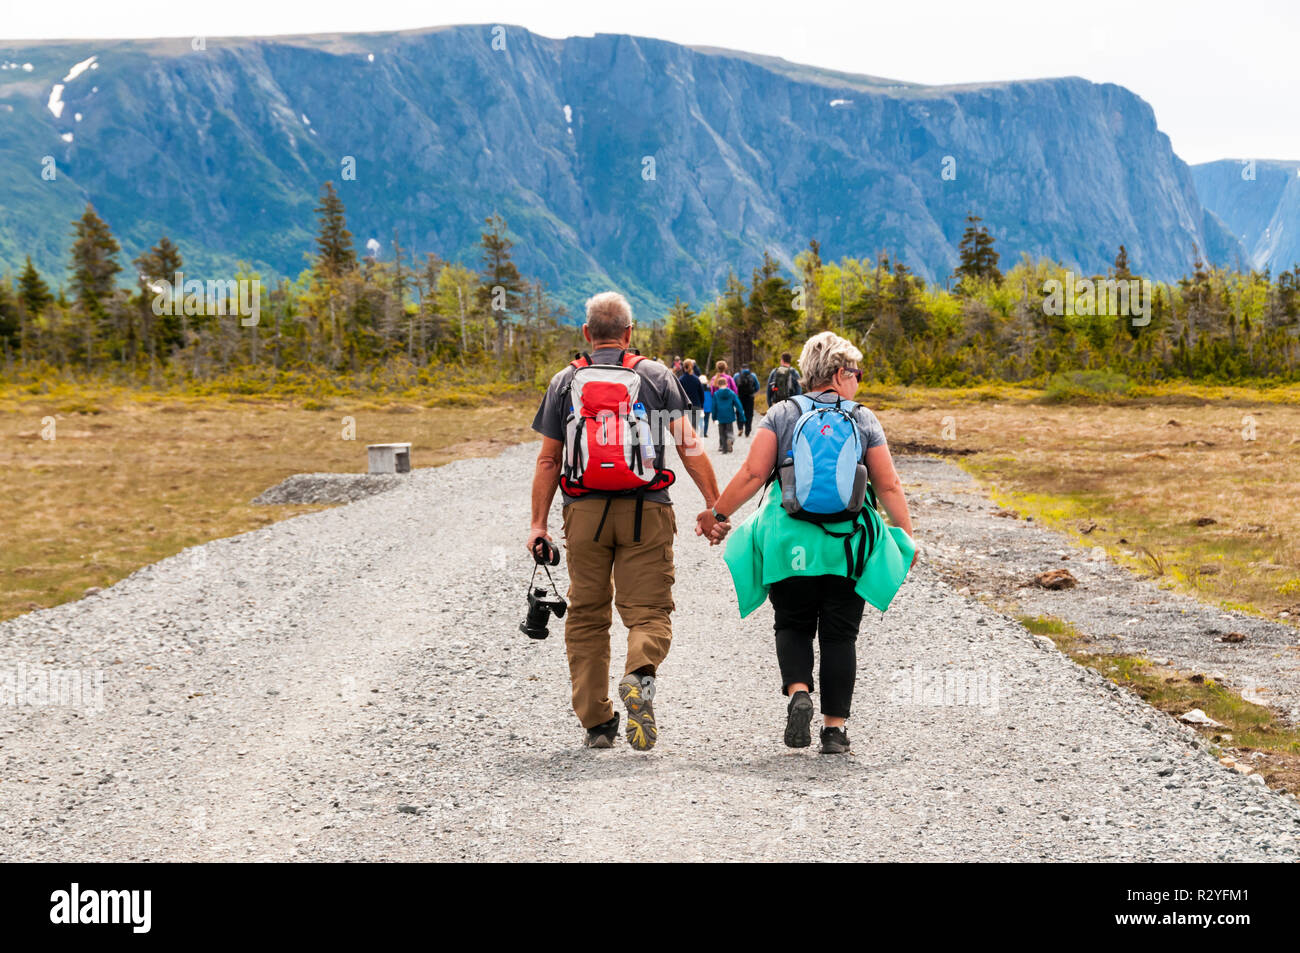 People walking along track to start of Western Brook Pond in Gros Morne National Park, Newfoundland. Group heading to boat trip. - Stock Image